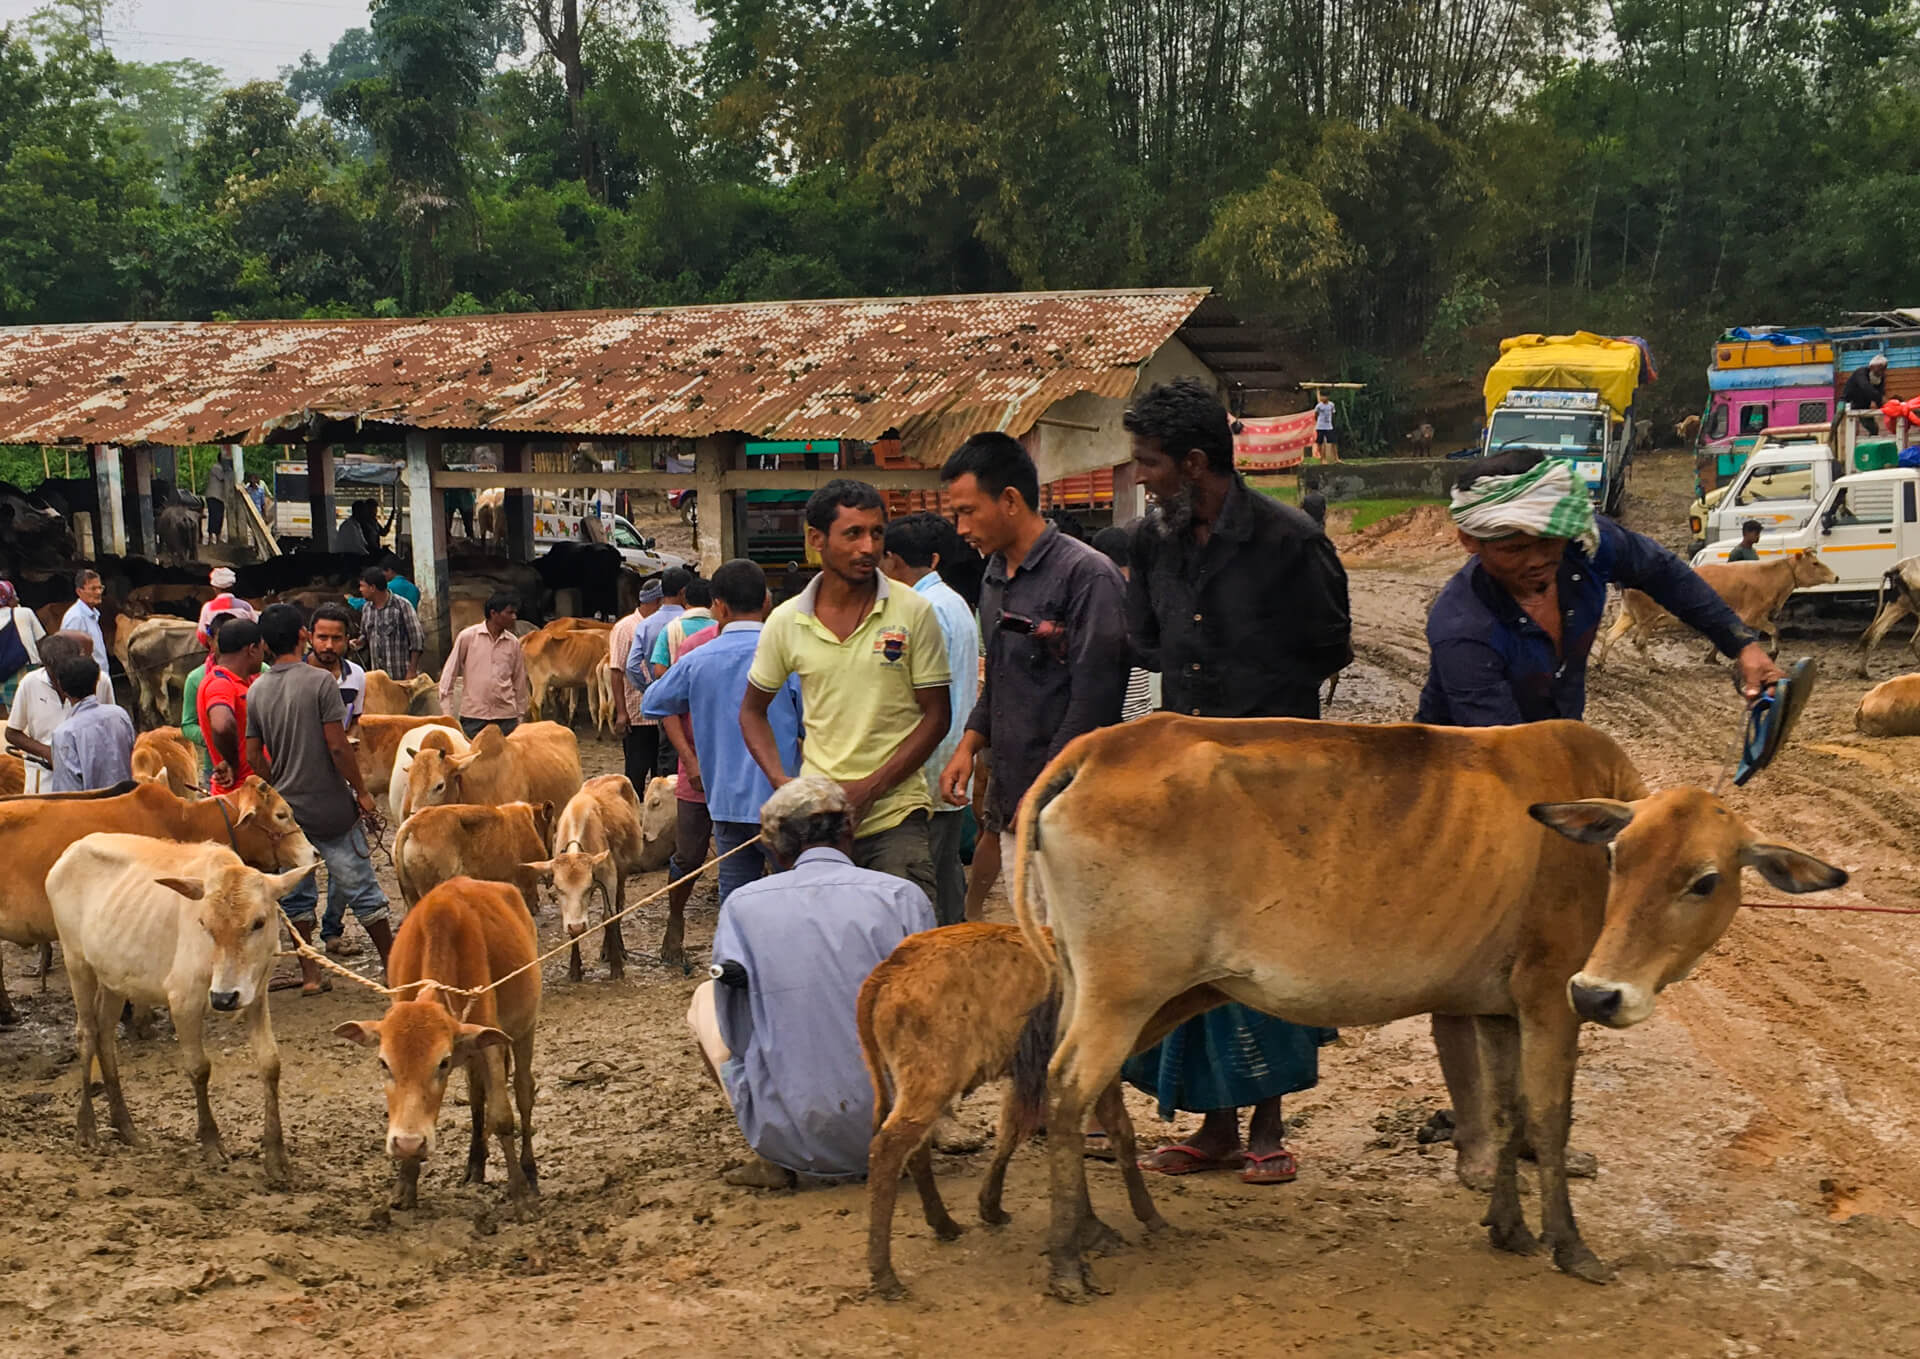 Men with cattle at a cattle market with a large shed in the background.